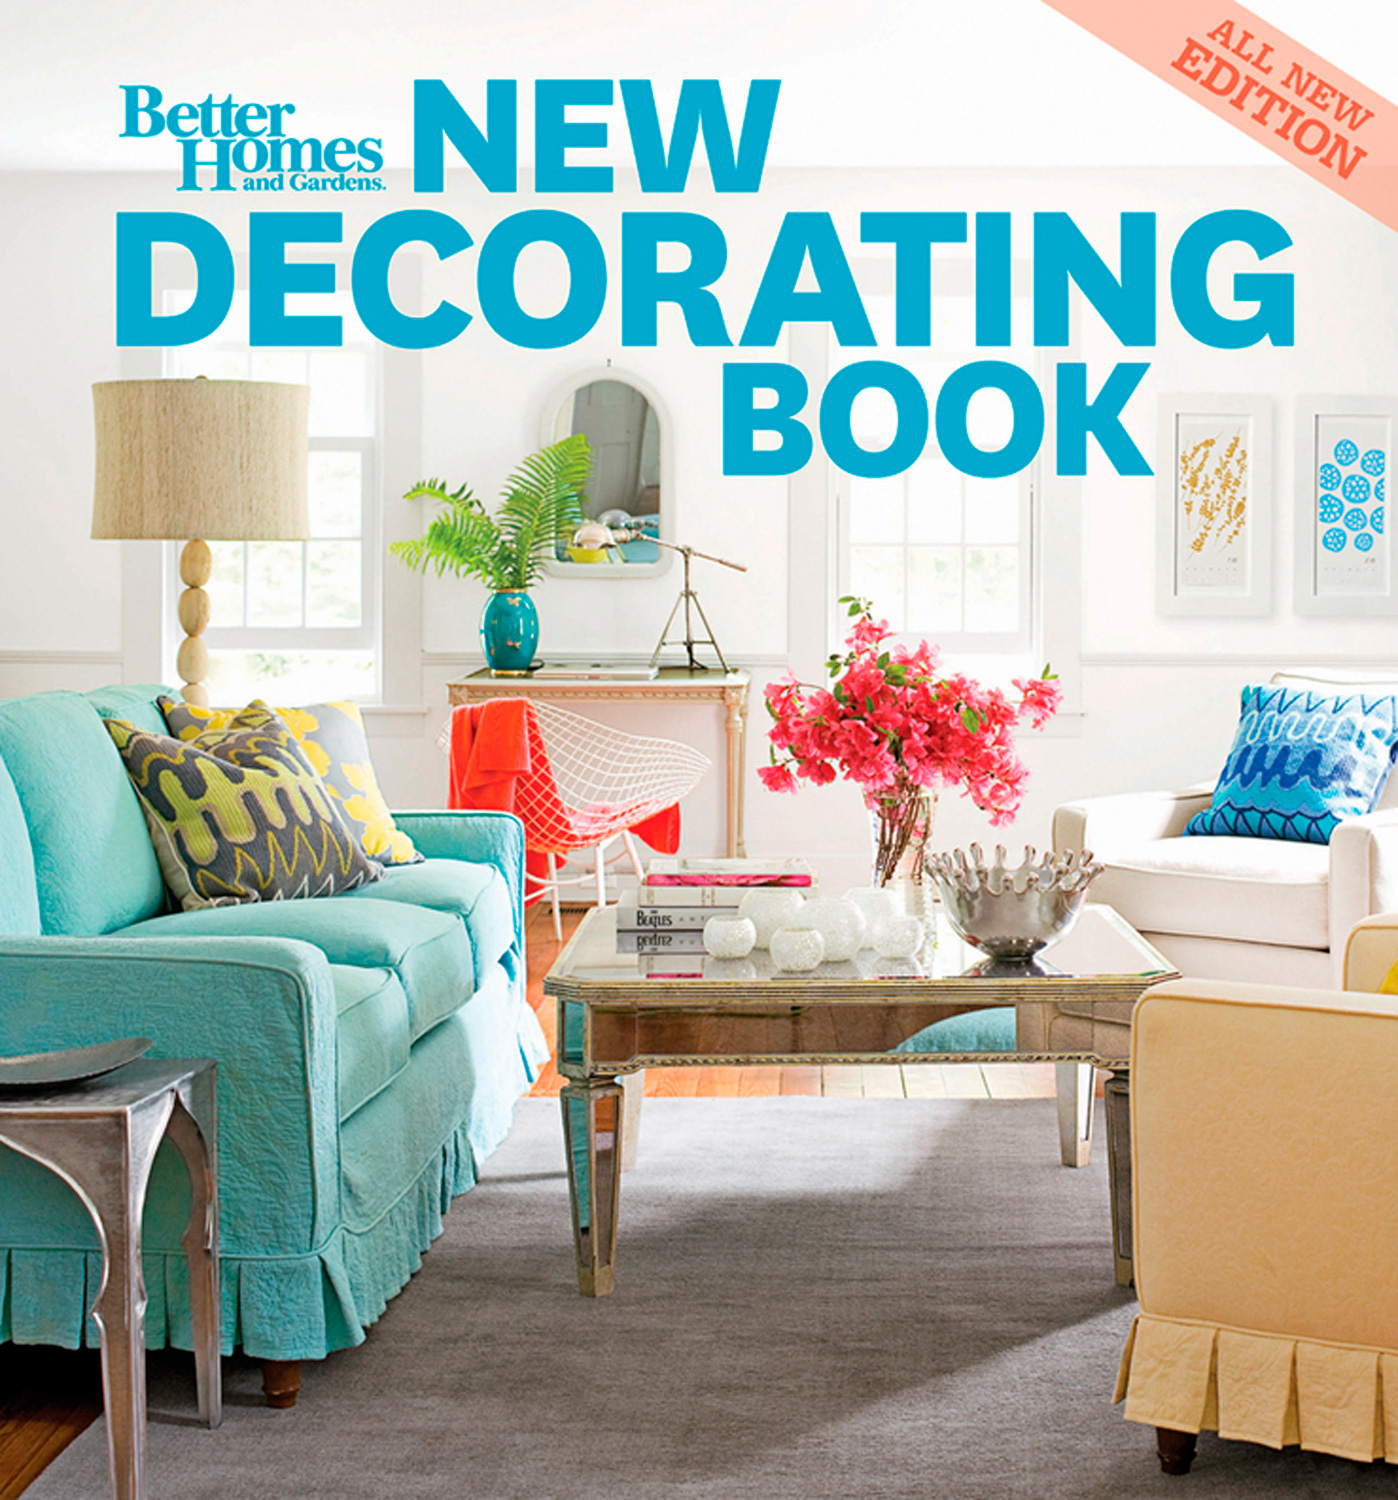 New Decorating Book, 10th Edition (Better Homes and Gardens)-9780470887141